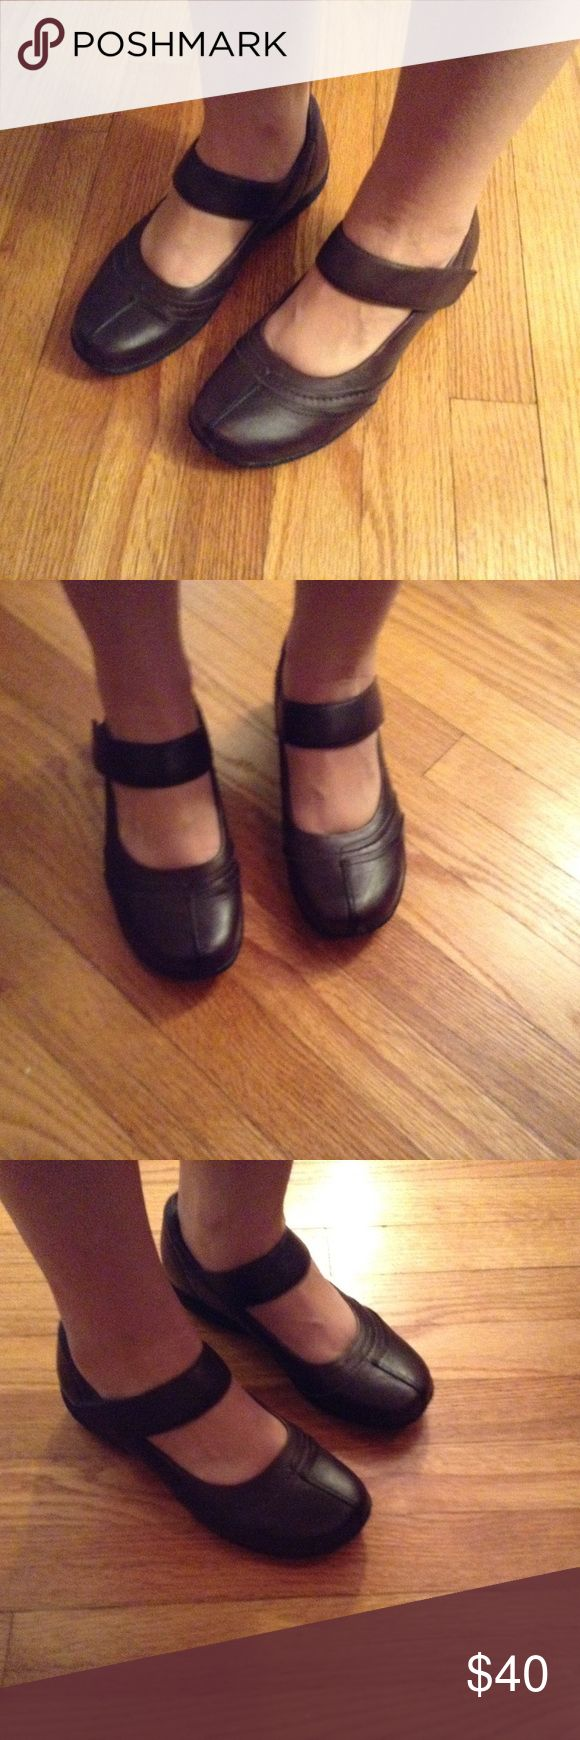 Clarks Bendables Brown Slippers size 7.5 LN Great pair of Clarks from their Bendables line in size 7.5. Super comfy. Strap goes across the top of the foot and Velcros. Worn only a few times. B2 Clarks Shoes Flats & Loafers